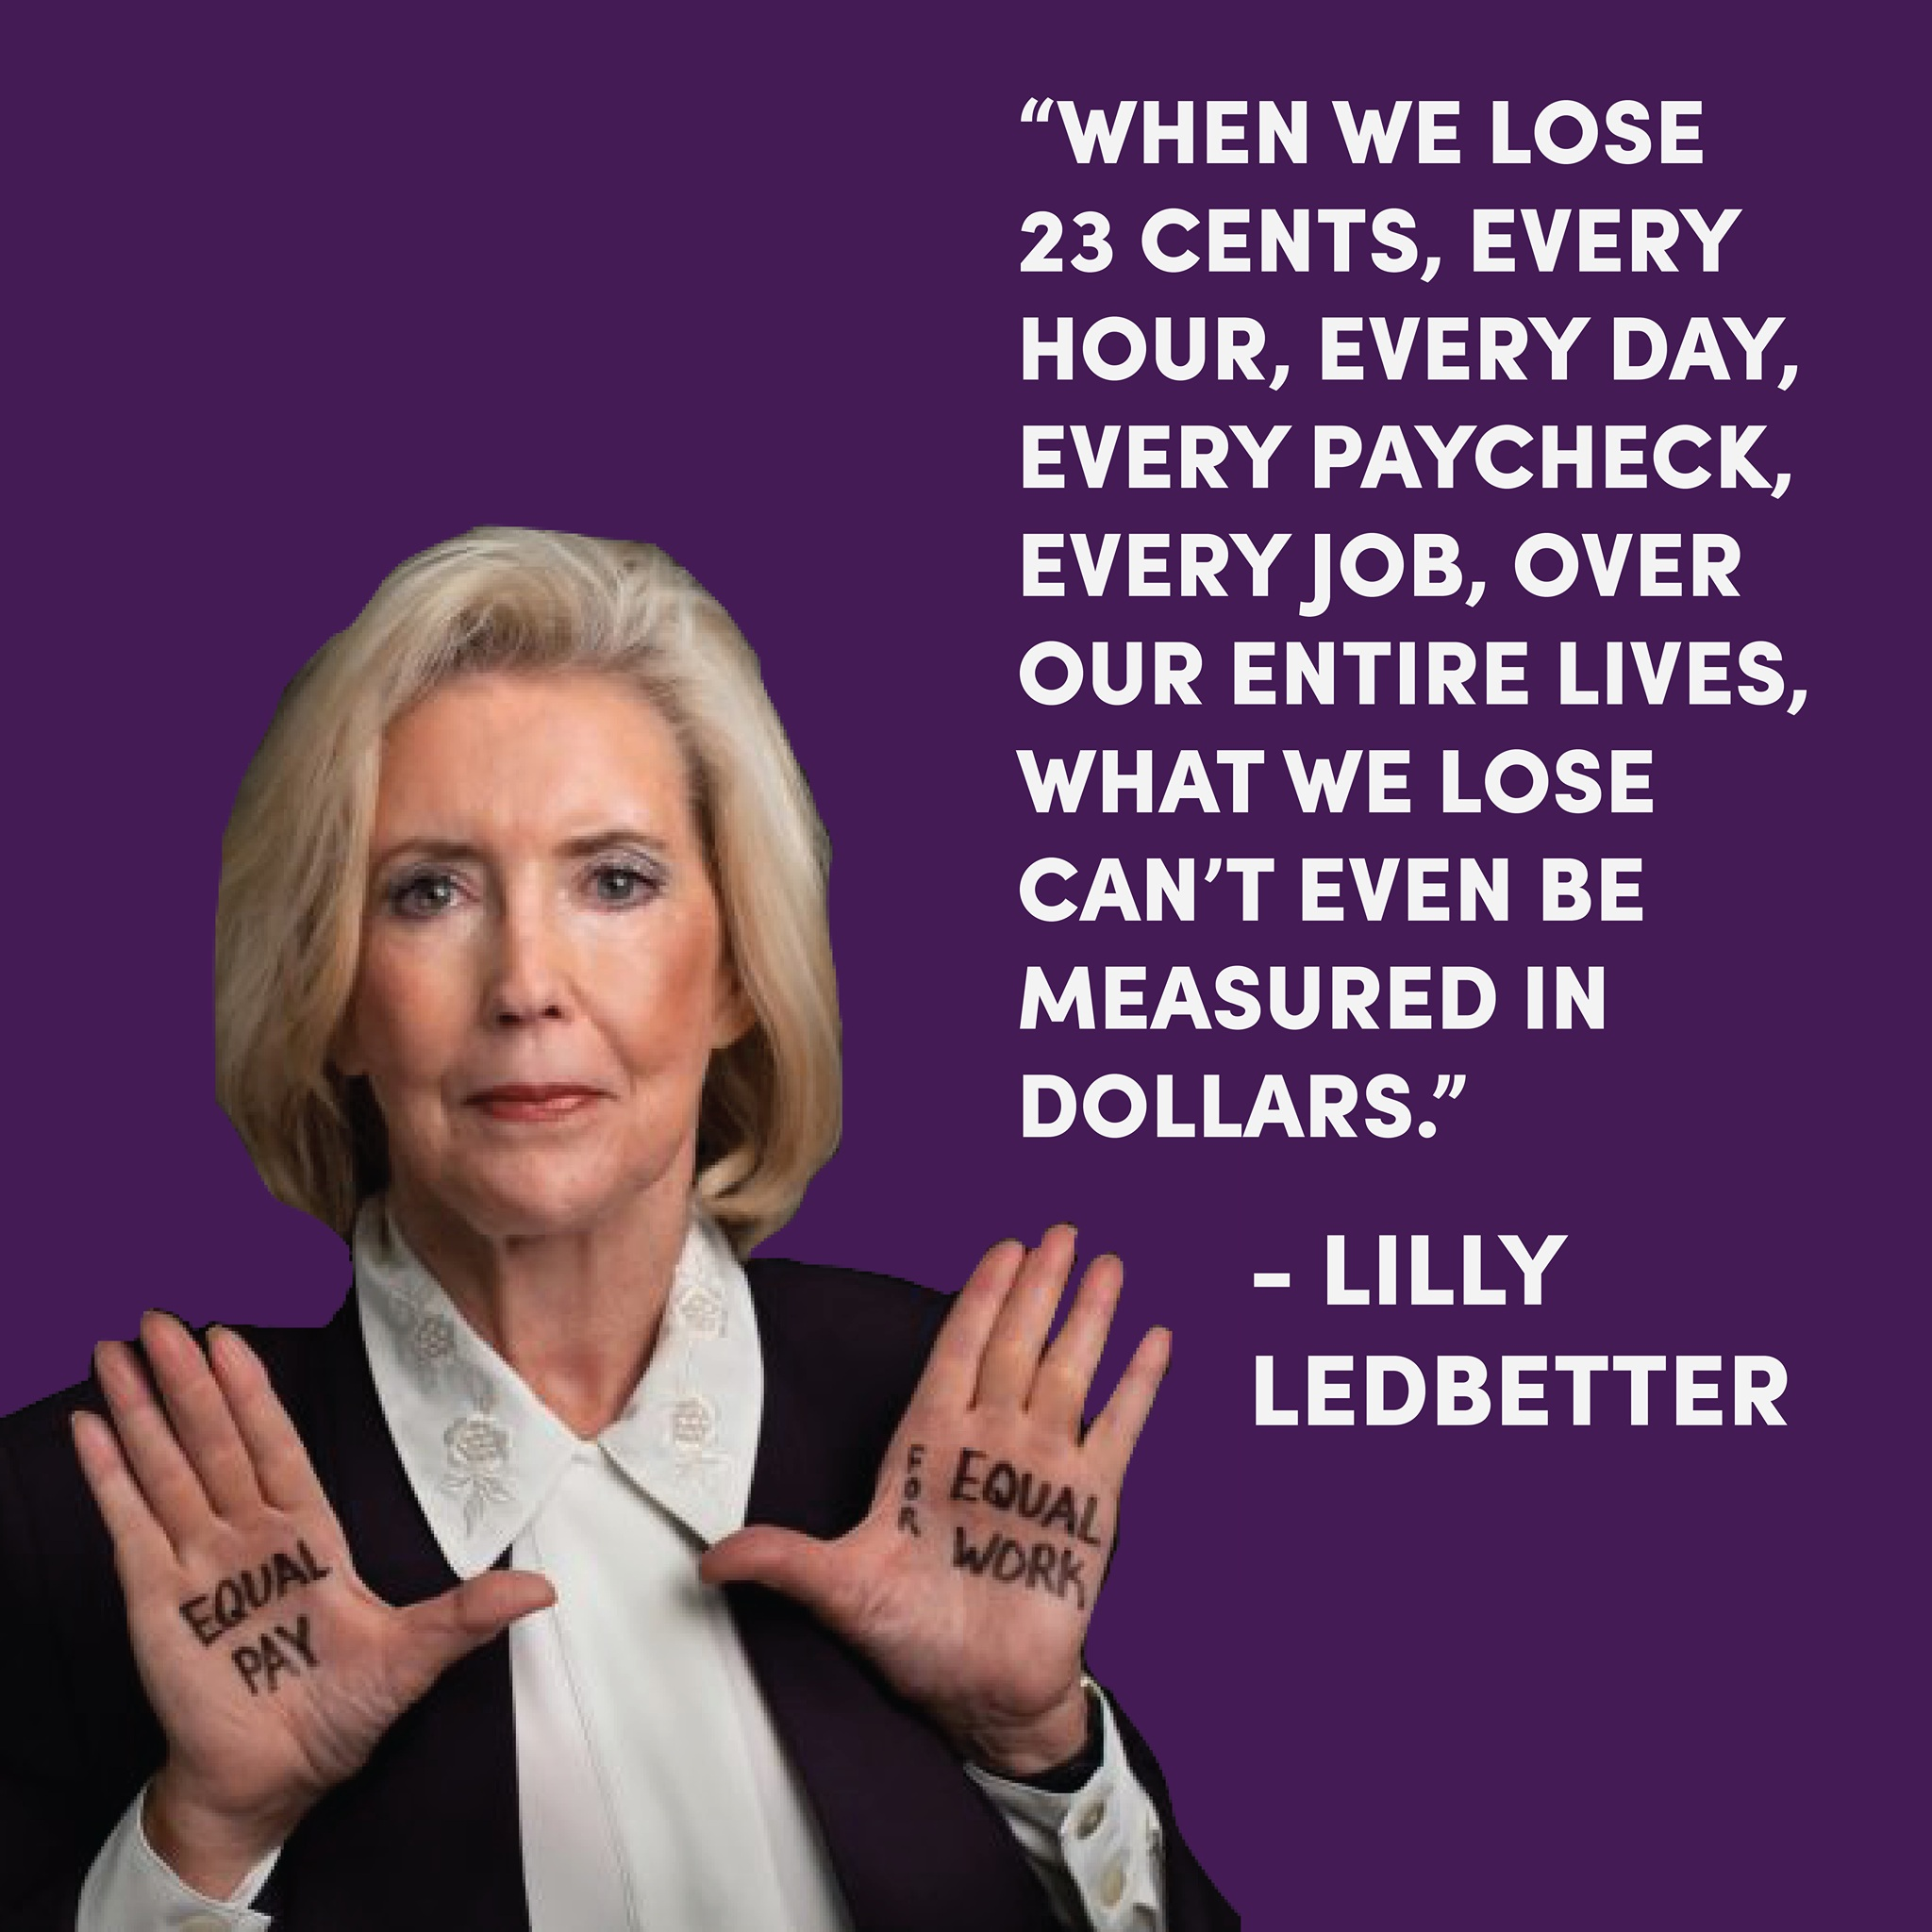 Twenty years ago, Goodyear tire plant manager Lilly Ledbetter came to work one morning to find an anonymous note in her mailbox: it listed her salary, which was a fraction of what other male managers at Goodyear were making. Until this moment, Ledbetter was entirely unaware of her salary difference. Upon being hired, she had signed an agreement that prohibited her from discussing pay with her coworkers, effectively silencing her employer's discriminatory pay practices. As a silence-breaker of her time, Ledbetter courageously brought her case to the Supreme Court. She became the champion of what would become a national movement for equal pay.   Ledbetter's story transcends the fight for equal pay: in the wake of the #MeToo movement, we are reminded that cultures of silence – ones that are both legally and culturally reinforced -- have the ability to stall, stunt and end careers. More importantly, it is a prologue to what must become a higher standard for transparency, accountability and equality in workplaces across the country.